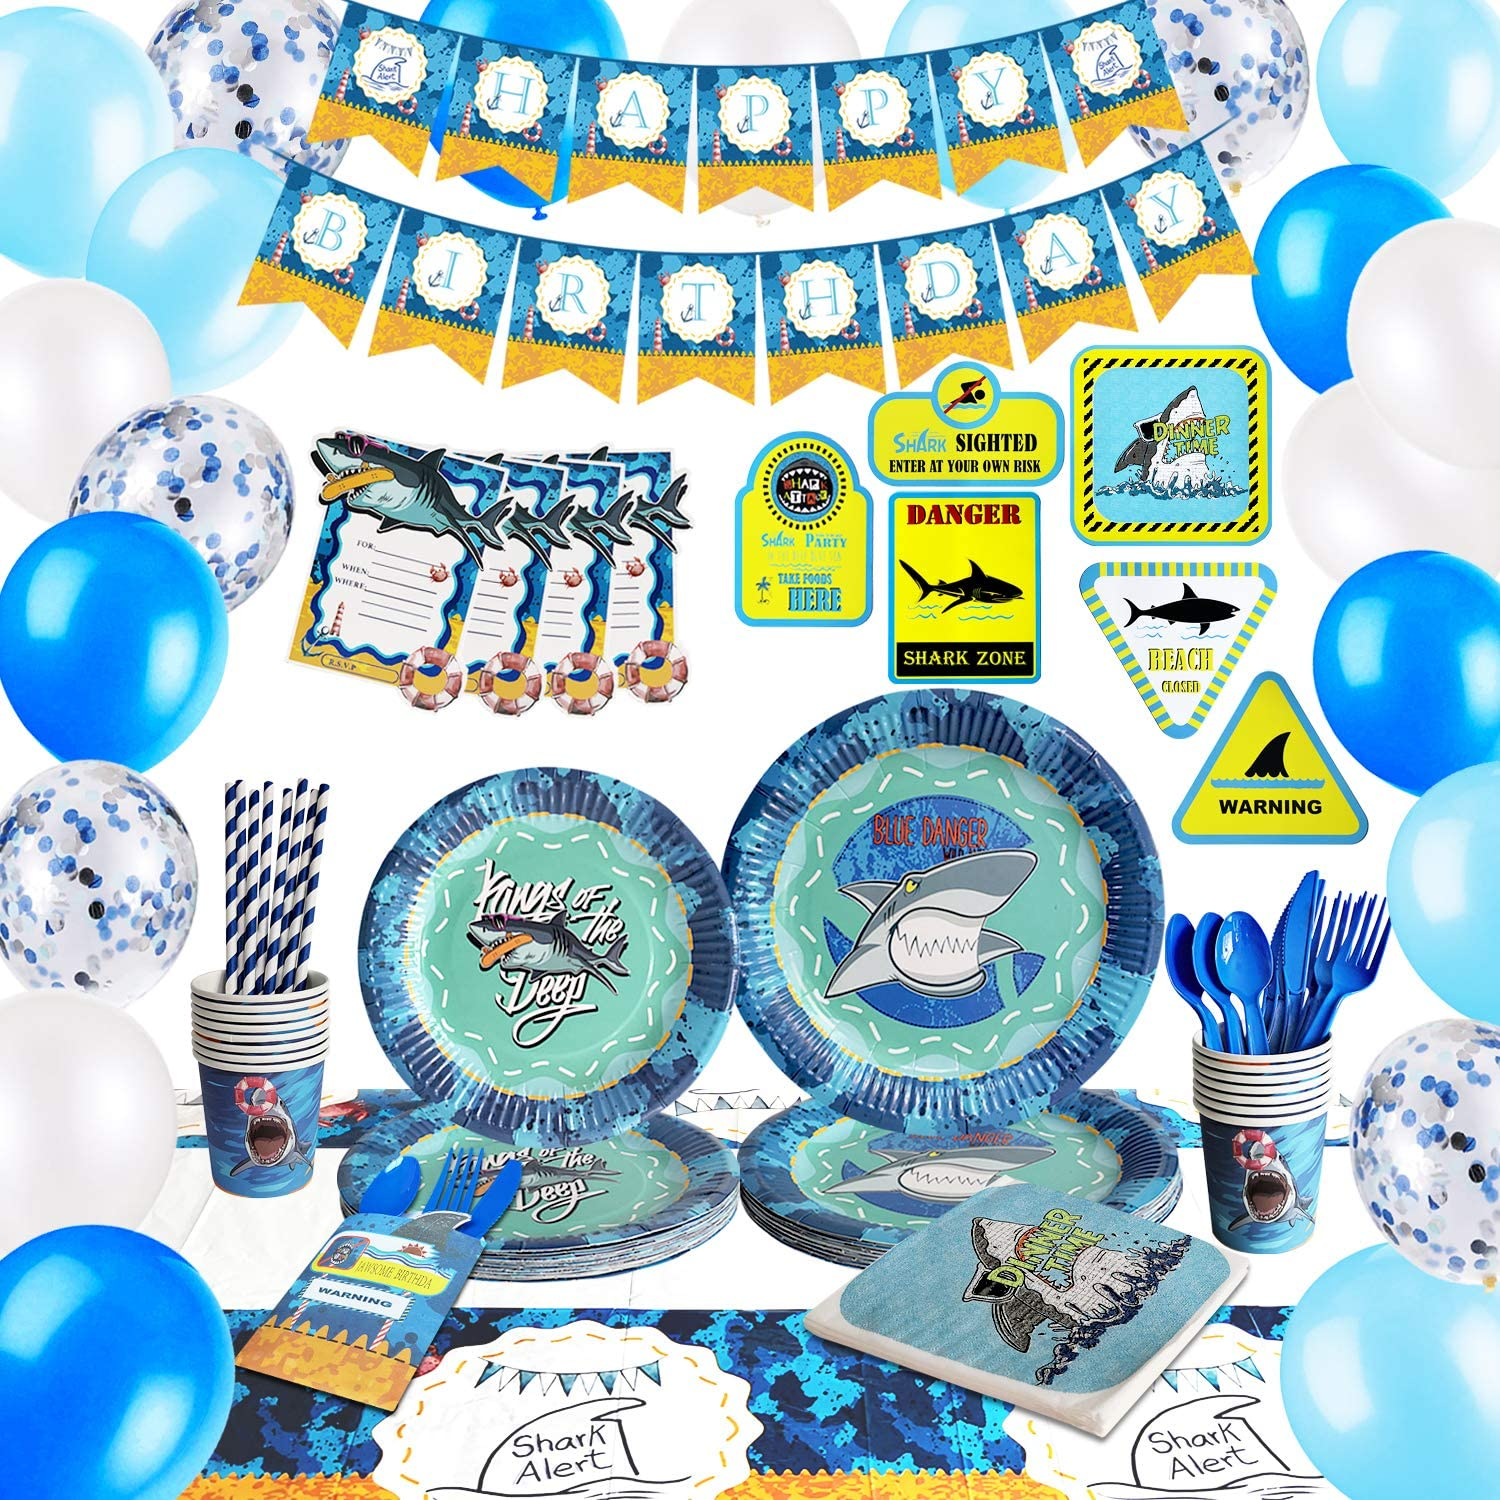 HIPEEWO Shark Birthday Decorations - Shark Party Supplies Decorations Set for Boys Kids Including Birthday Banner, Tablecloth, Balloons, Sign, Plates, Cups, Napkins, Cutlery Bag, Straws, Utensils, Serves 16 Guests 191 PCS